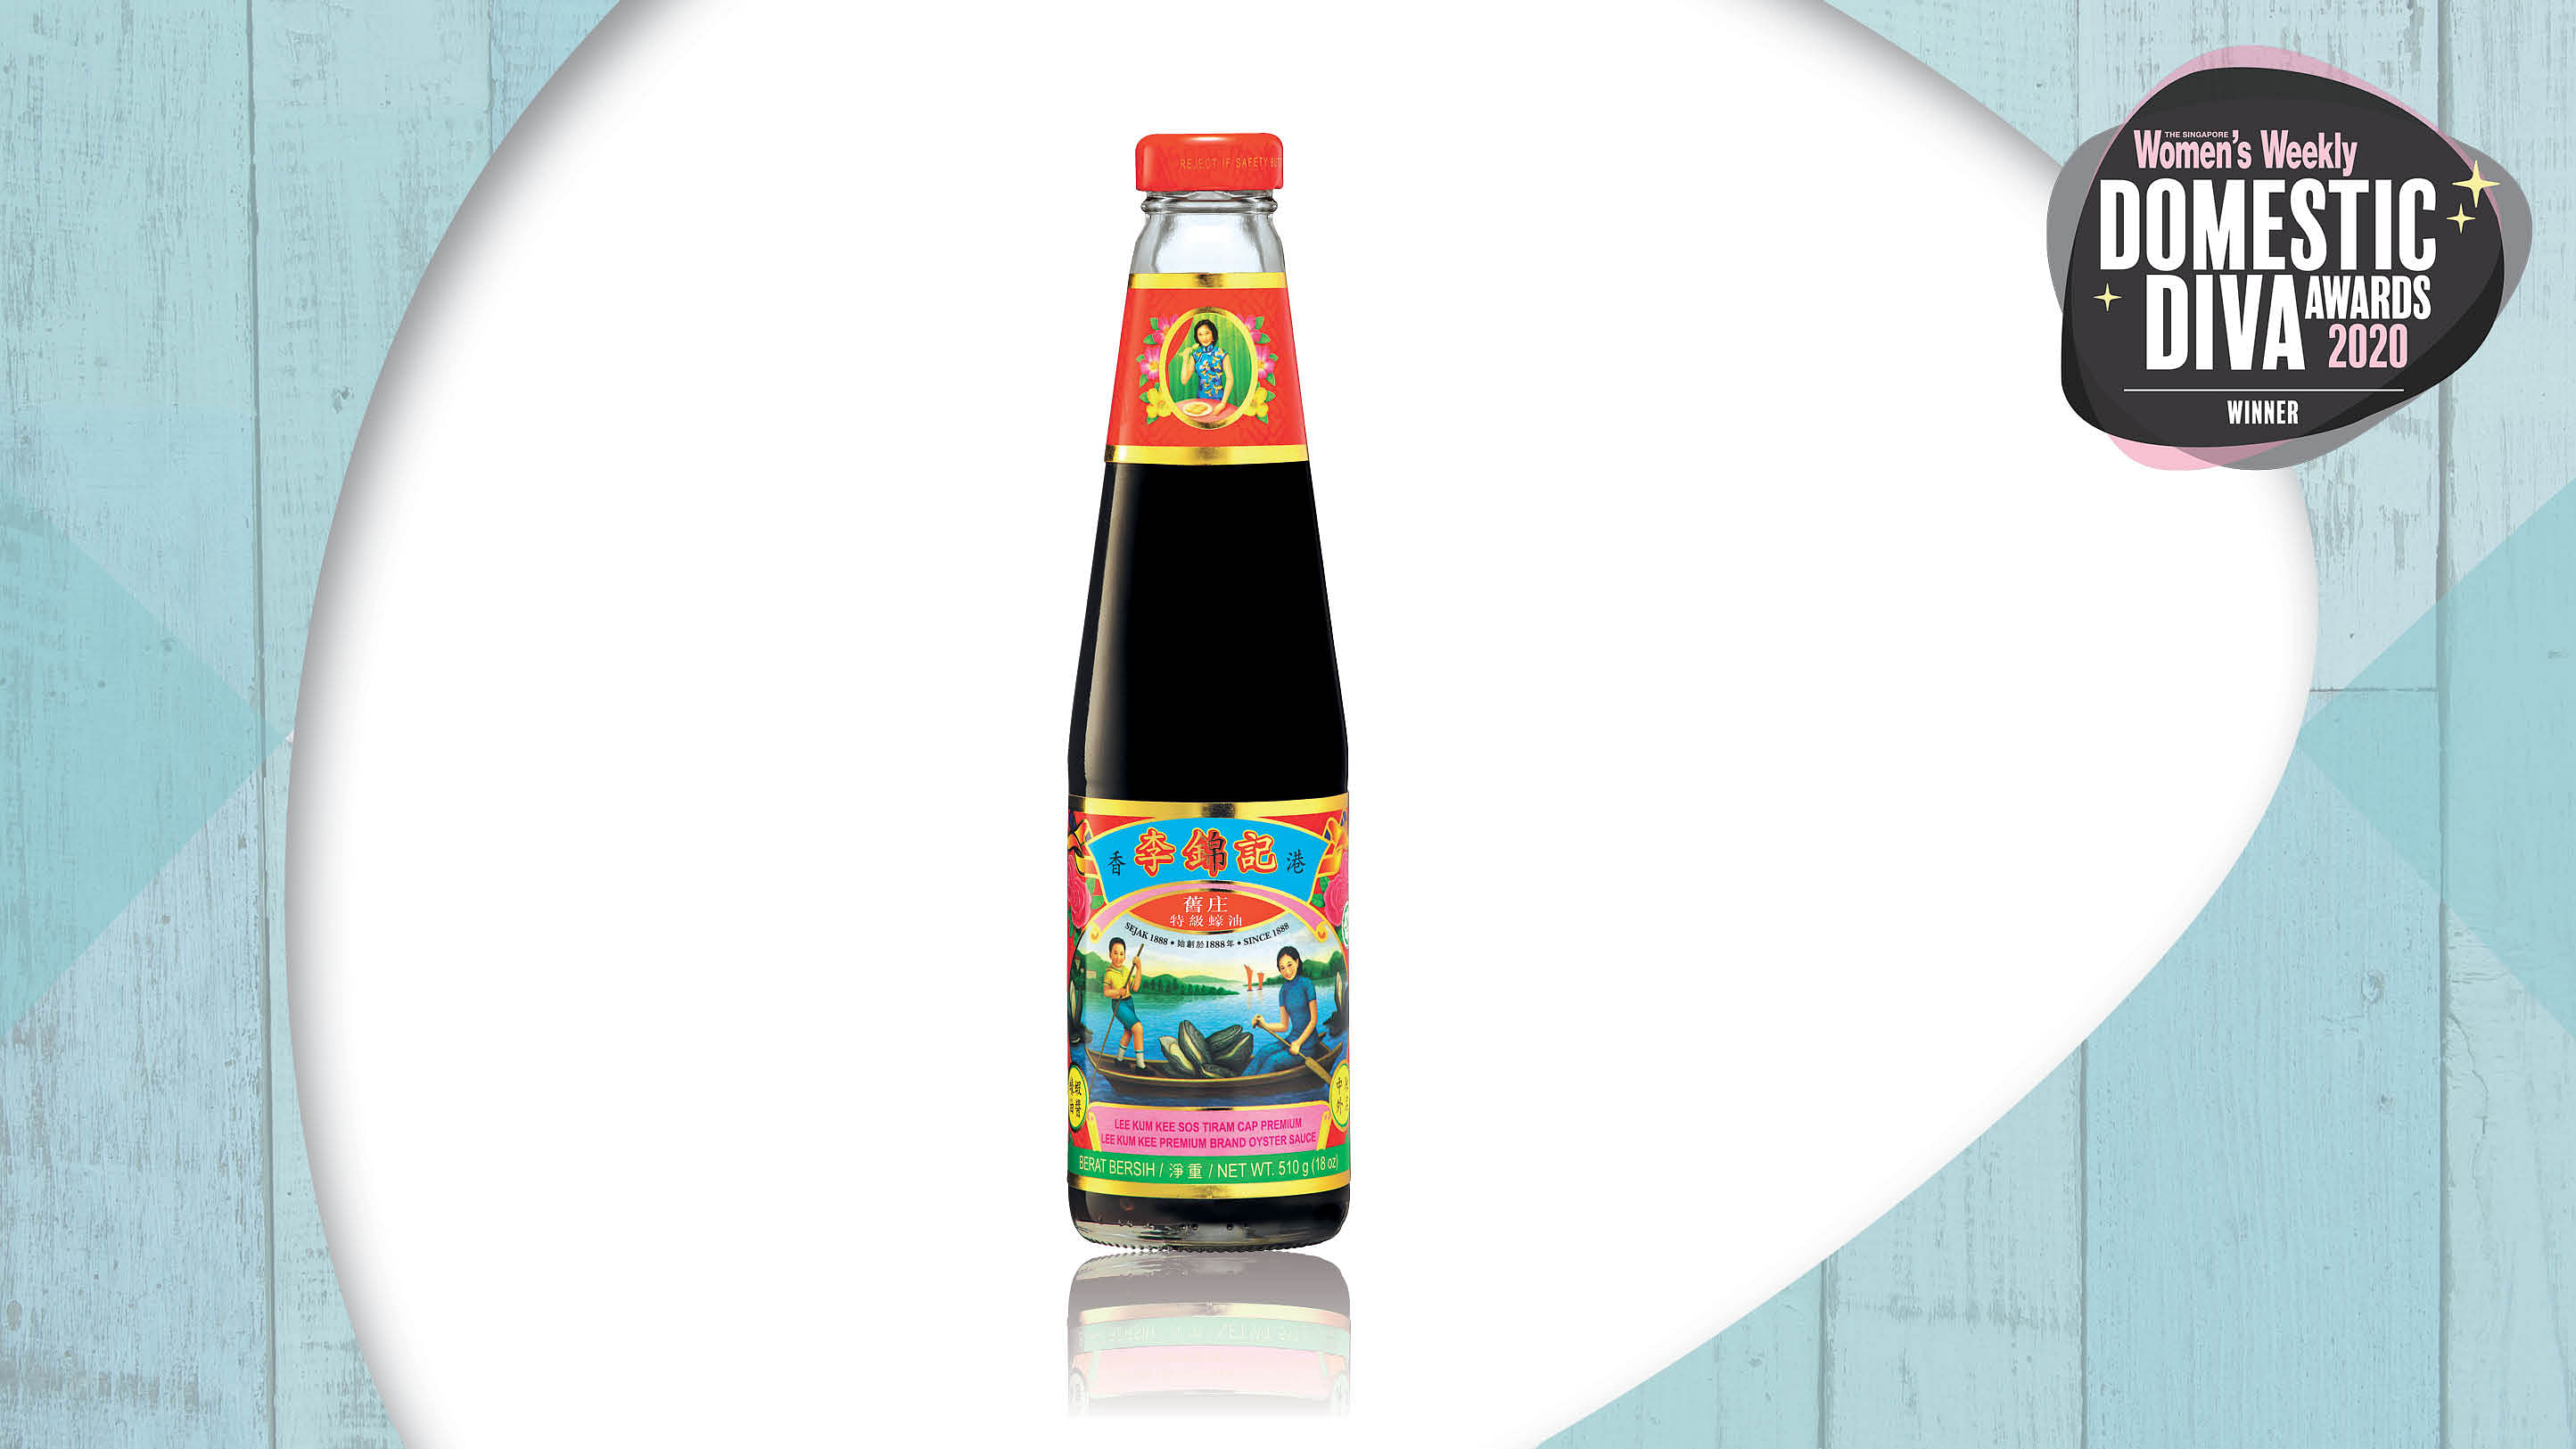 The Singapore Women's Weekly - domestic diva awards 2020 -Lee Kum Kee Premium Brand Oyster Sauce